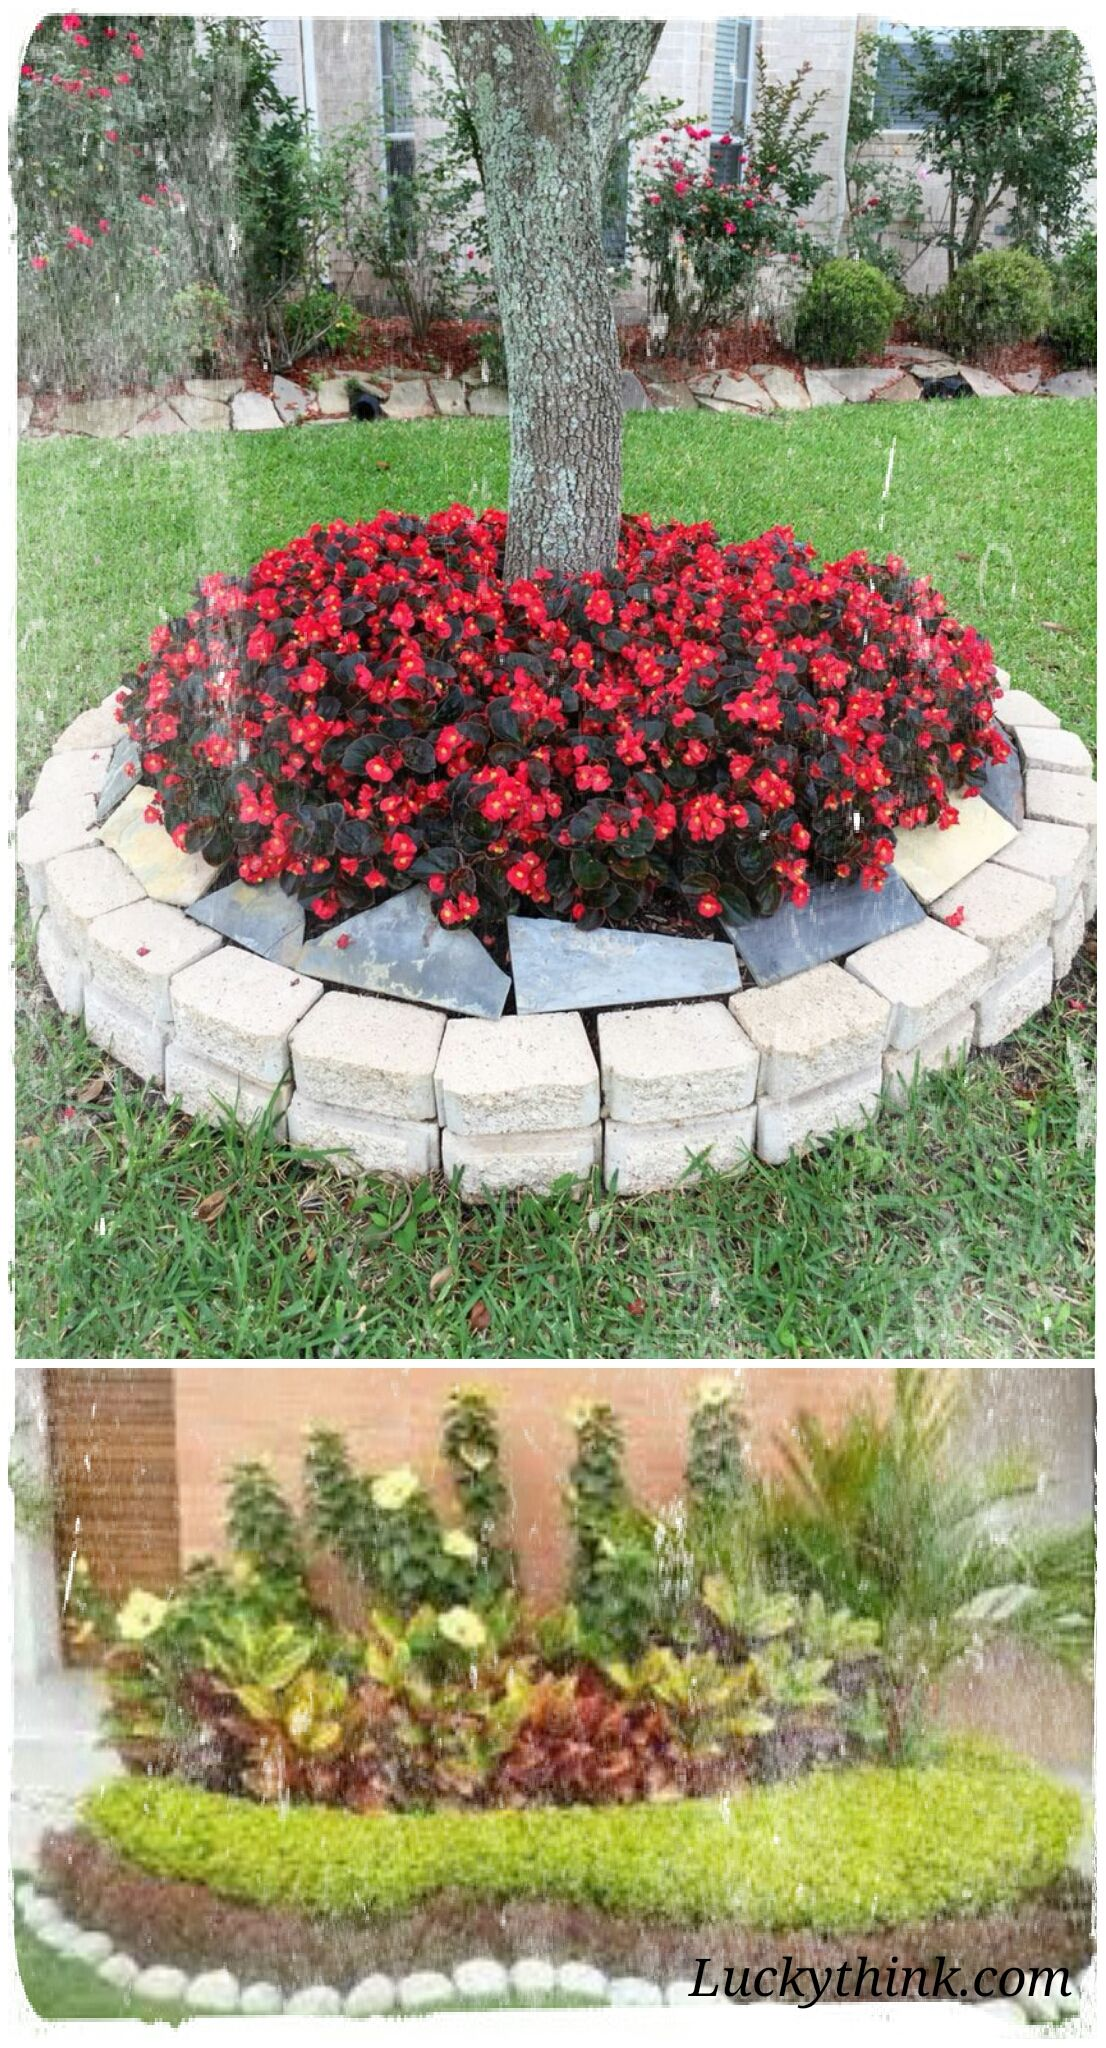 Examples Of Landscaping Ideas That Can Be Applied On Your Home Page Backyard Landscaping Garden Design Front Yard Garden Design Backyard landscaping flower bed ideas